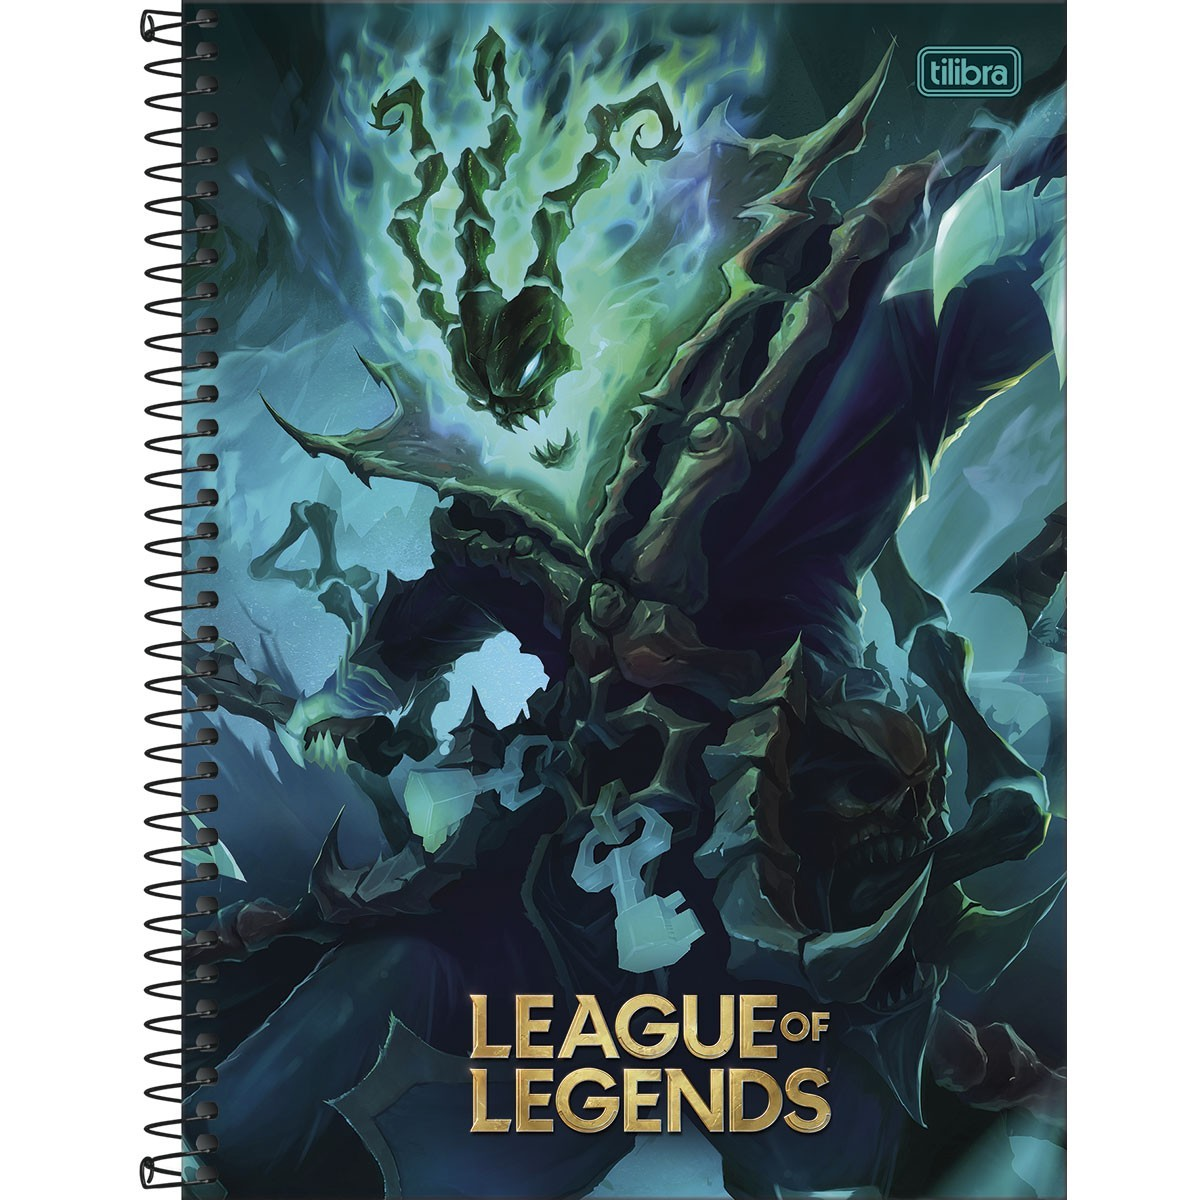 Caderno Espiral Capa Dura Universitário 1 Matéria League of Legends Tresh 80 Folhas